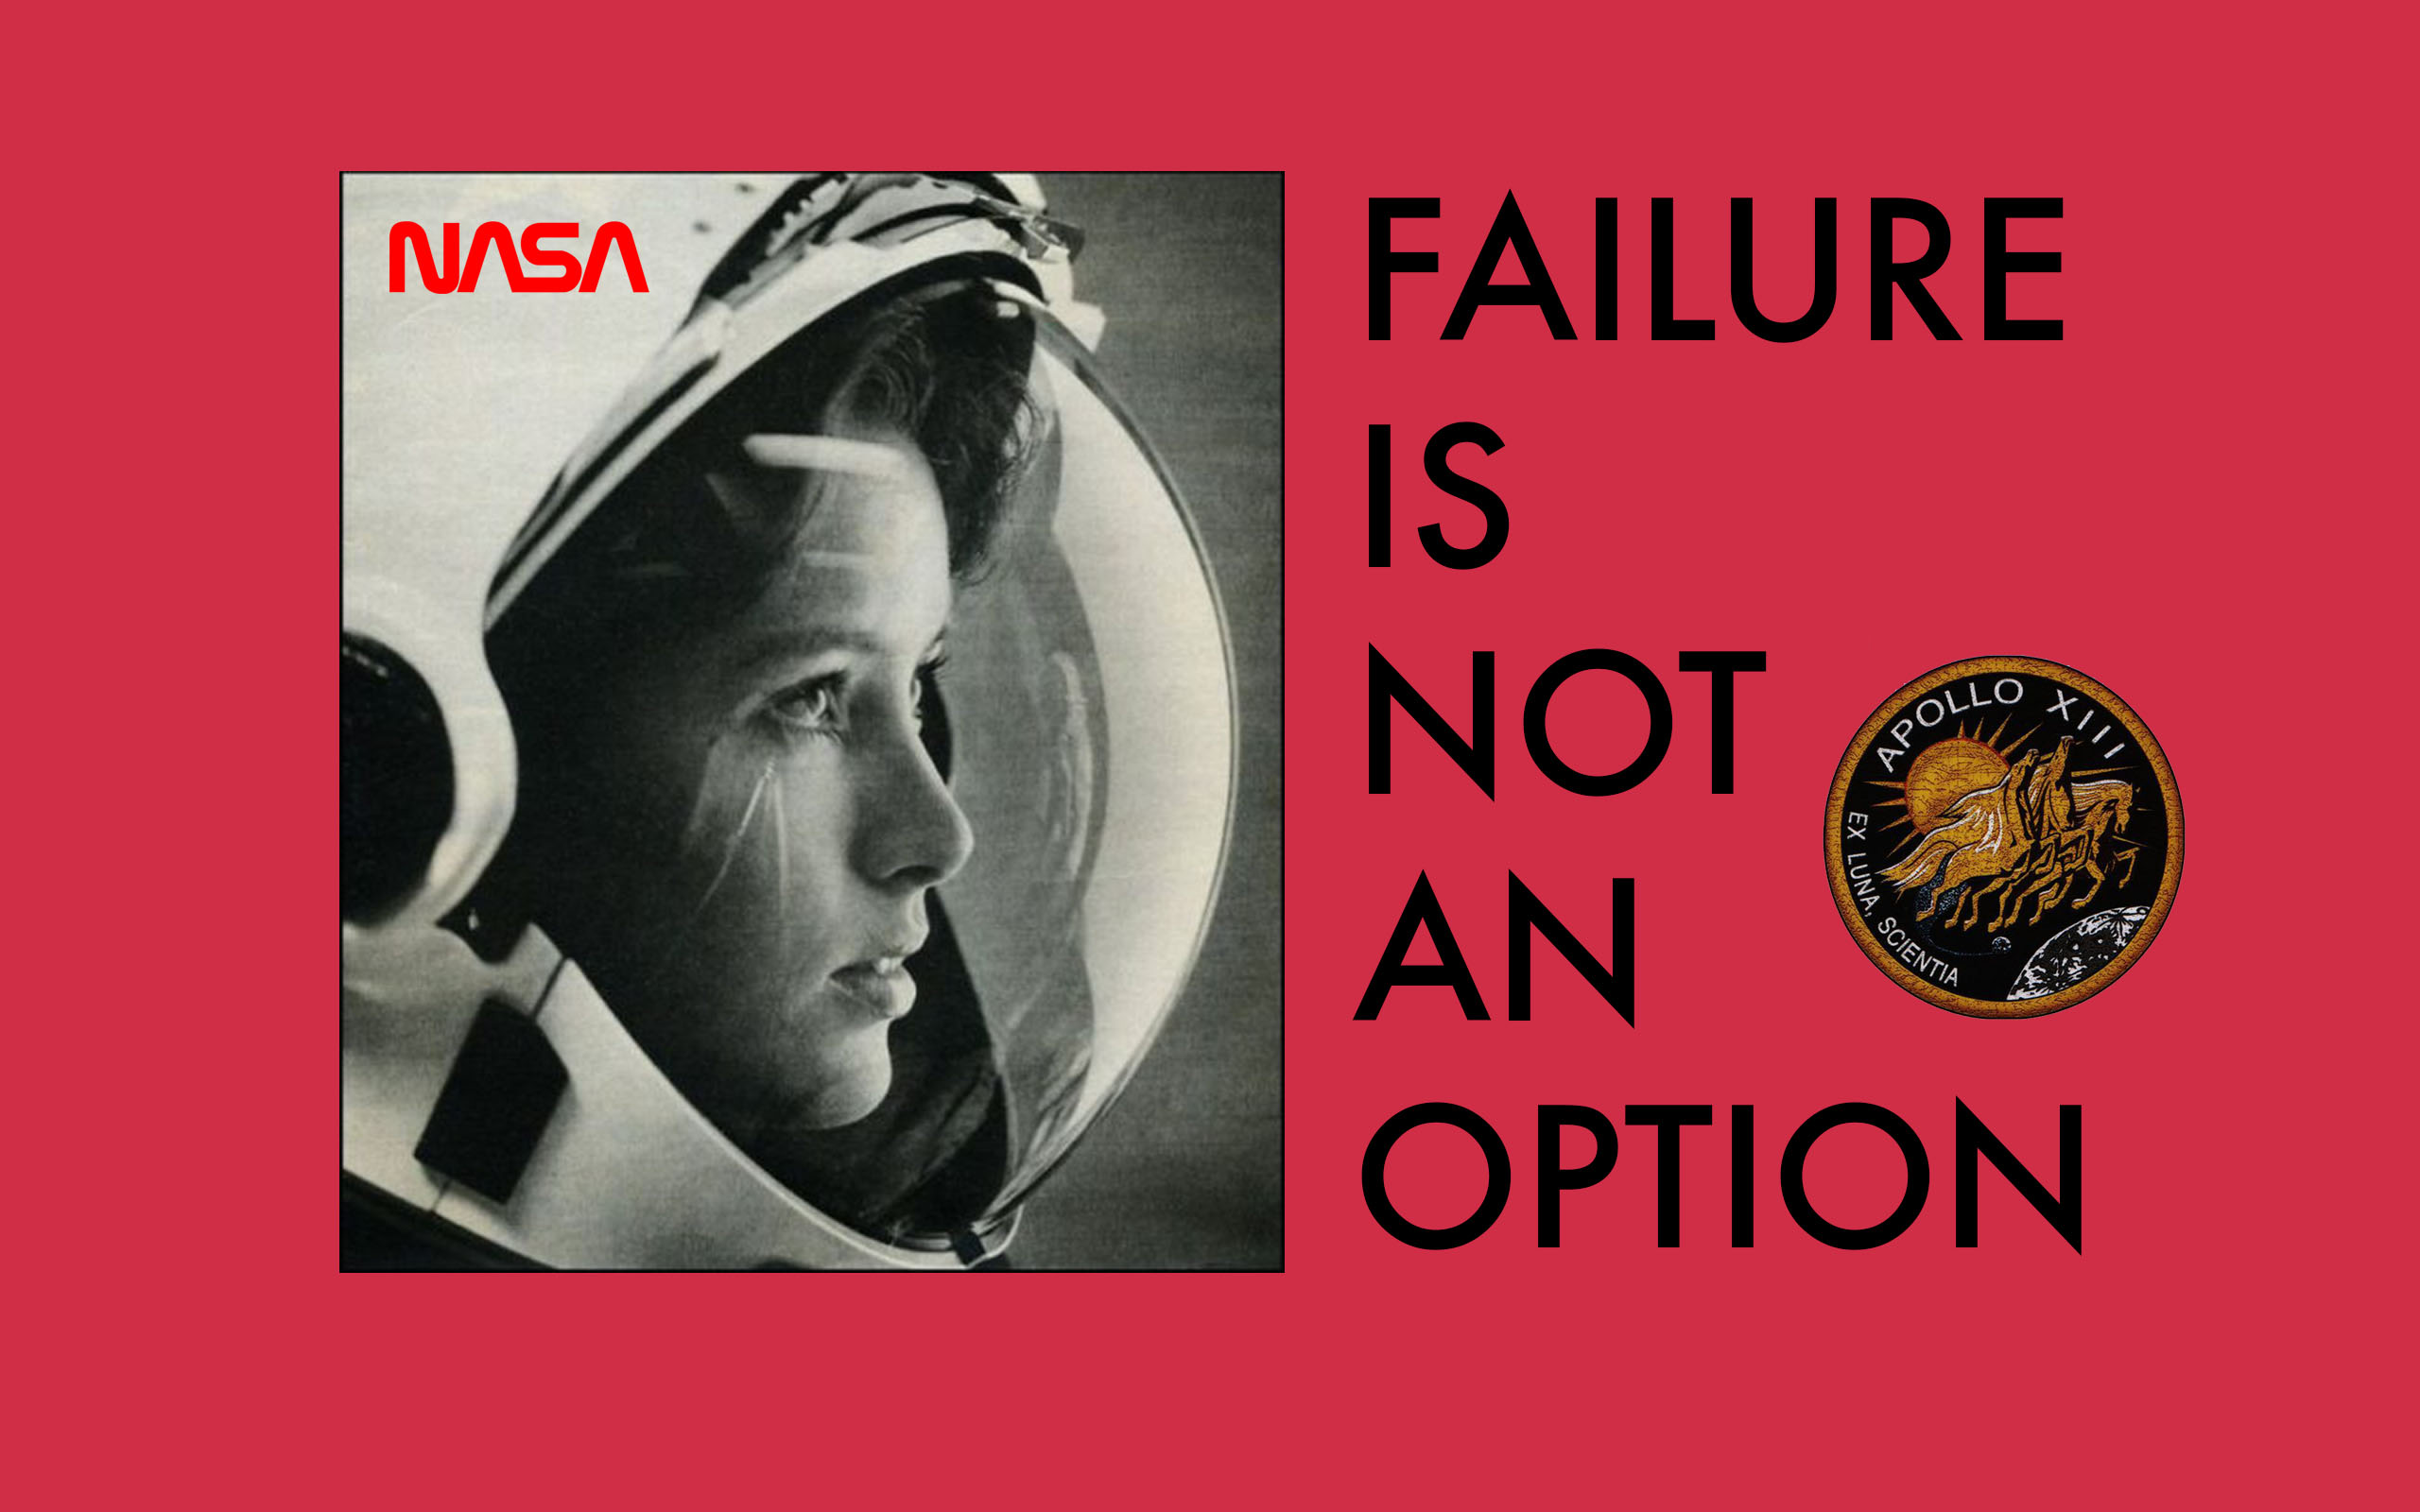 NASA- failure is not an option woman astronaut